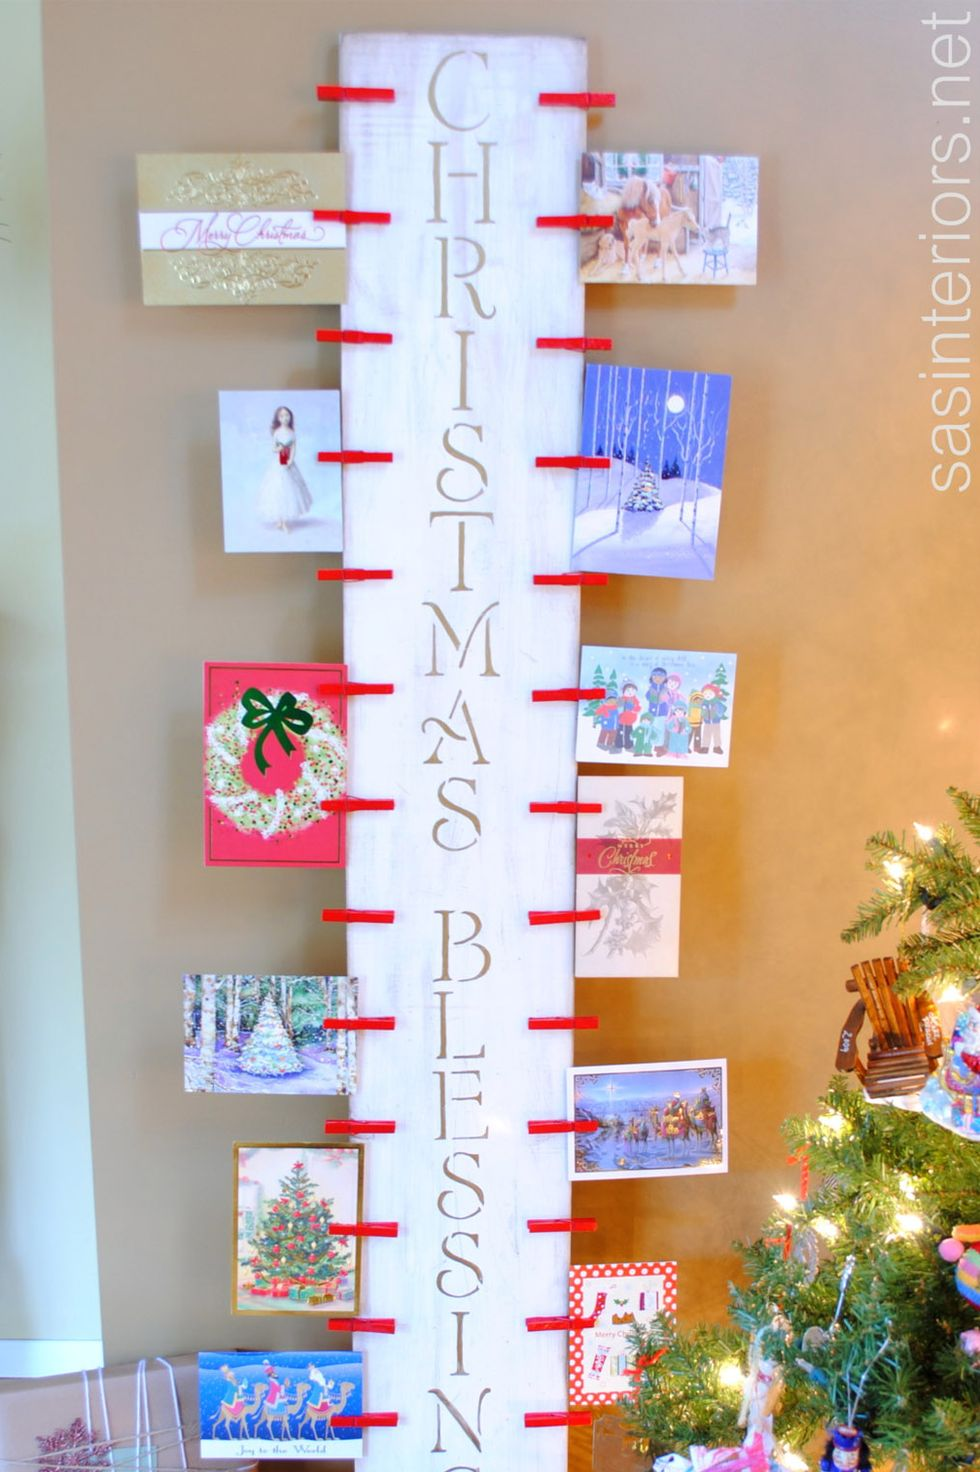 Wooden Christmas Card Display: These 25 DIY Christmas Card Holders - That Double As Festive Decor will allow you to beautifuly display your cards and will also give you some great decor.